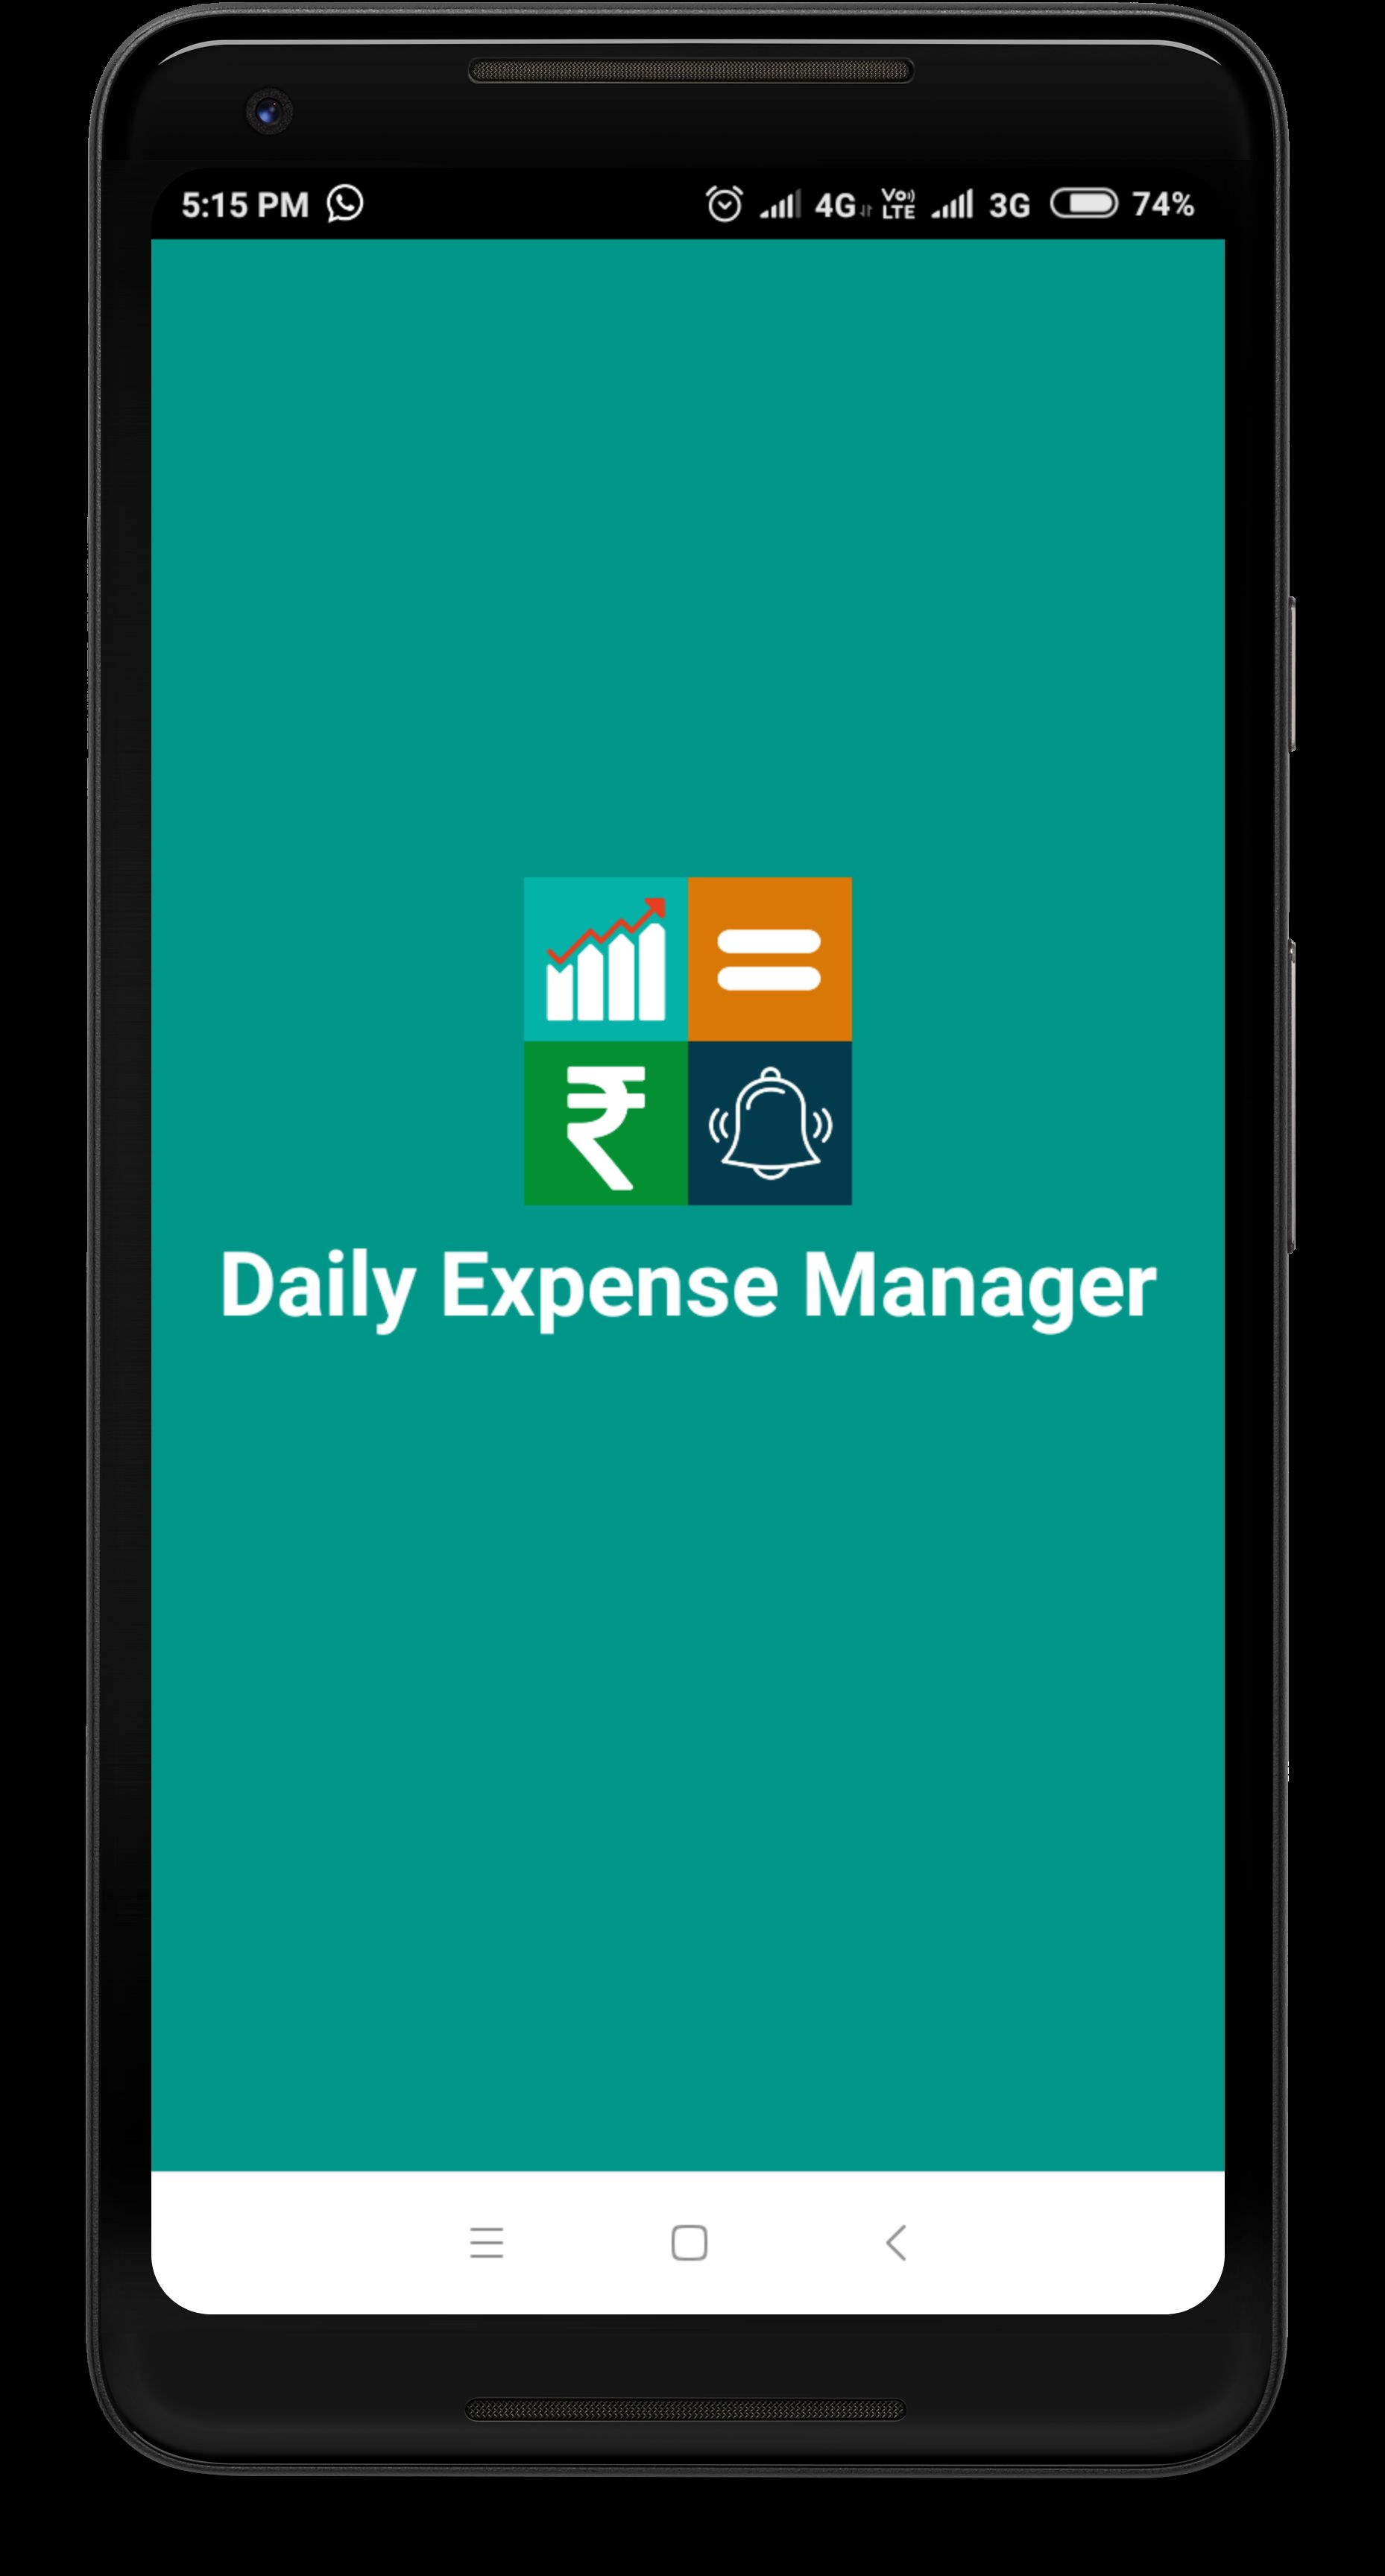 Daily Expense Manager - Android Source Code Screenshot 1